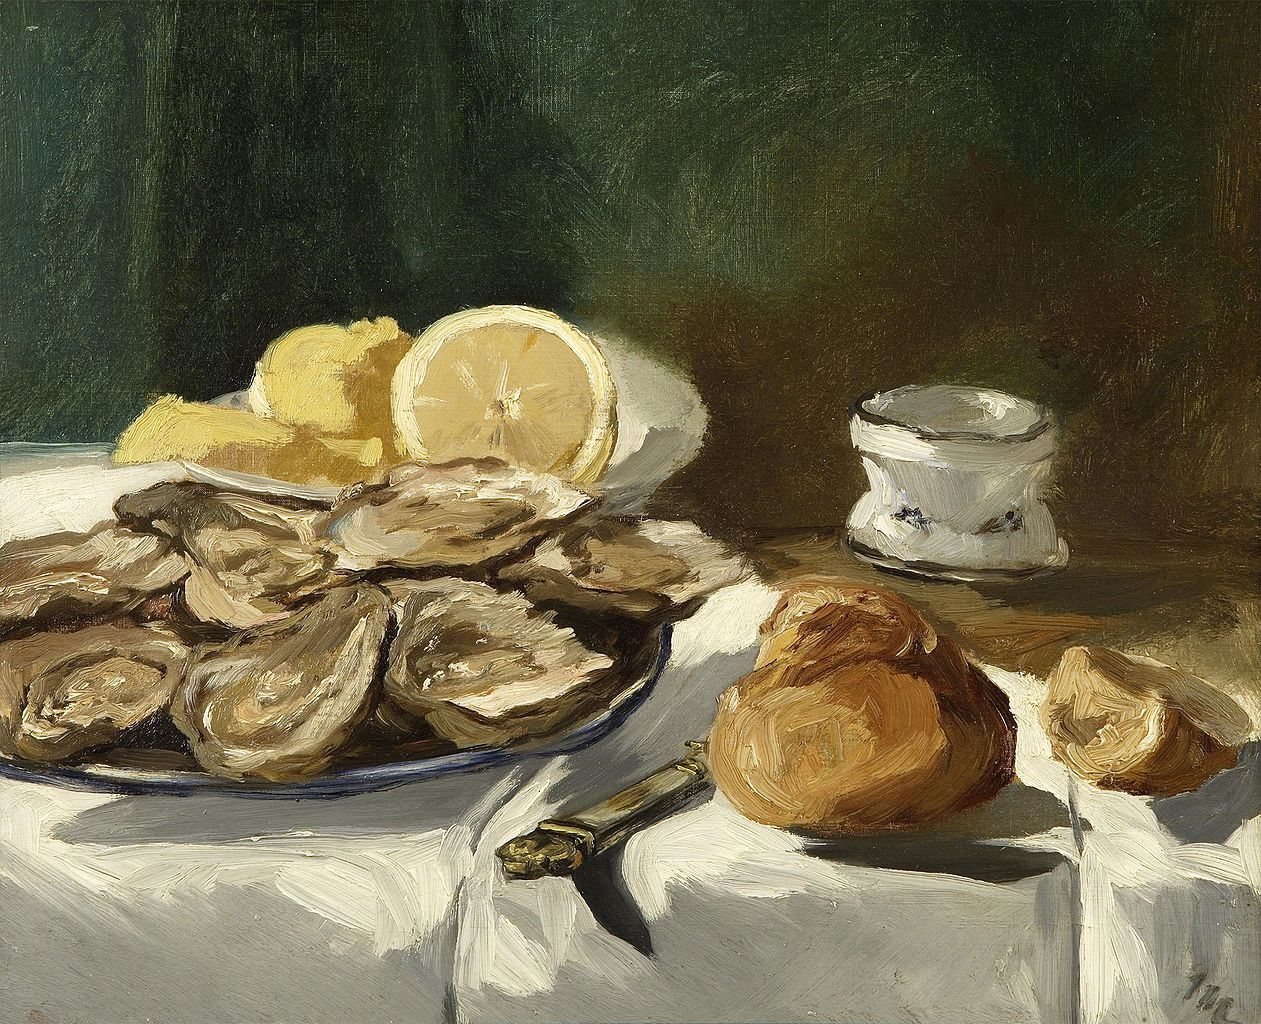 Les Location File:Édouard Manet - Nature Morte, Huîtres, Citron